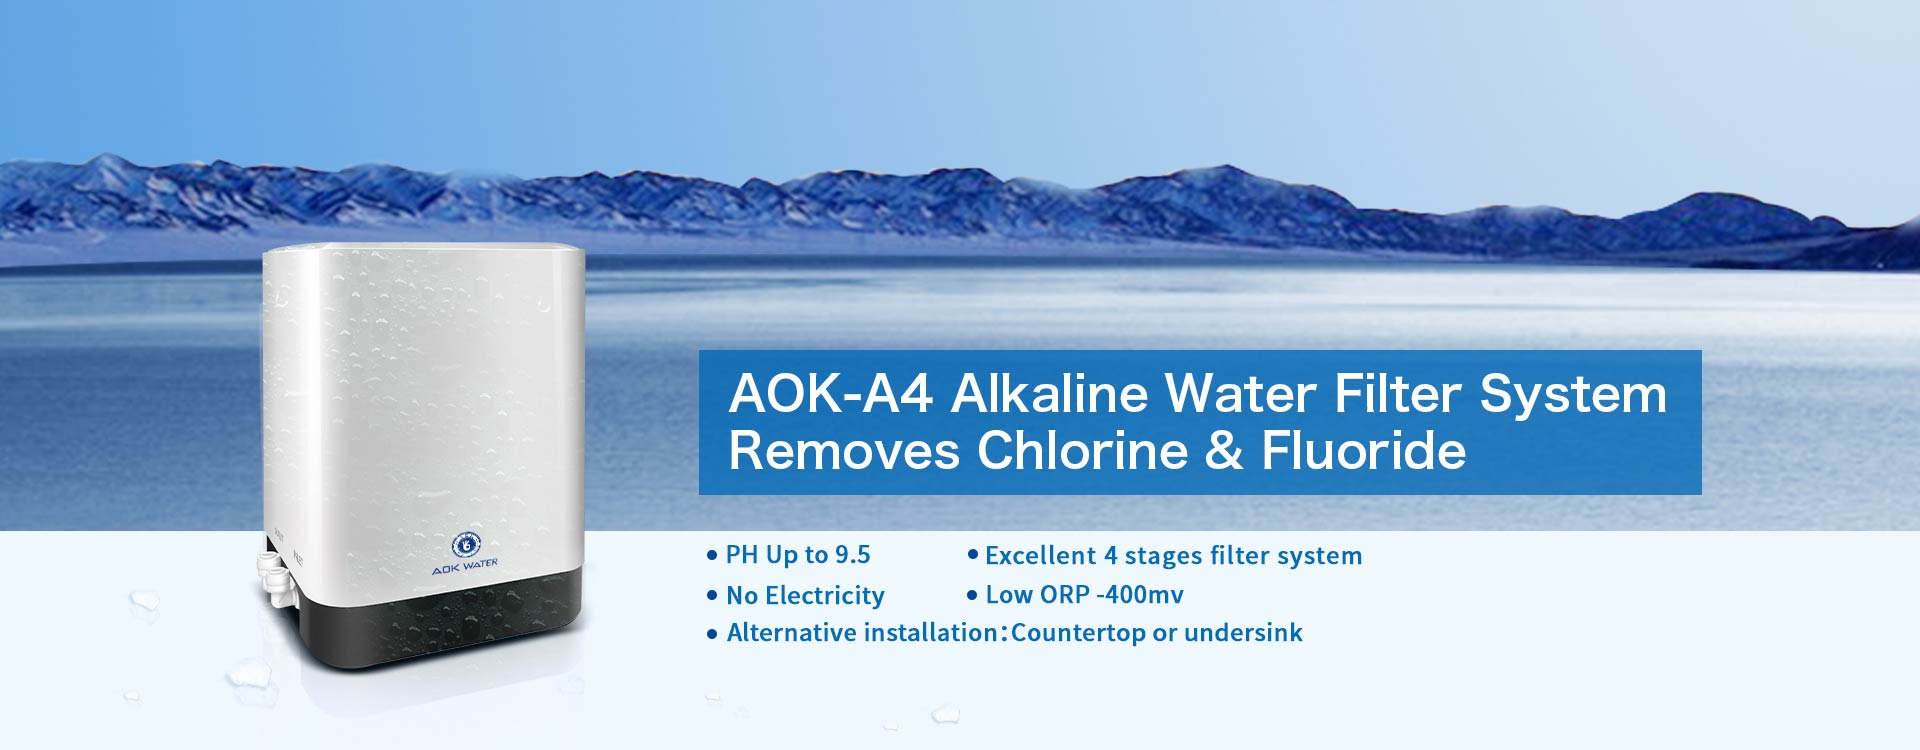 aok-a4-alkaline-water-filter-system